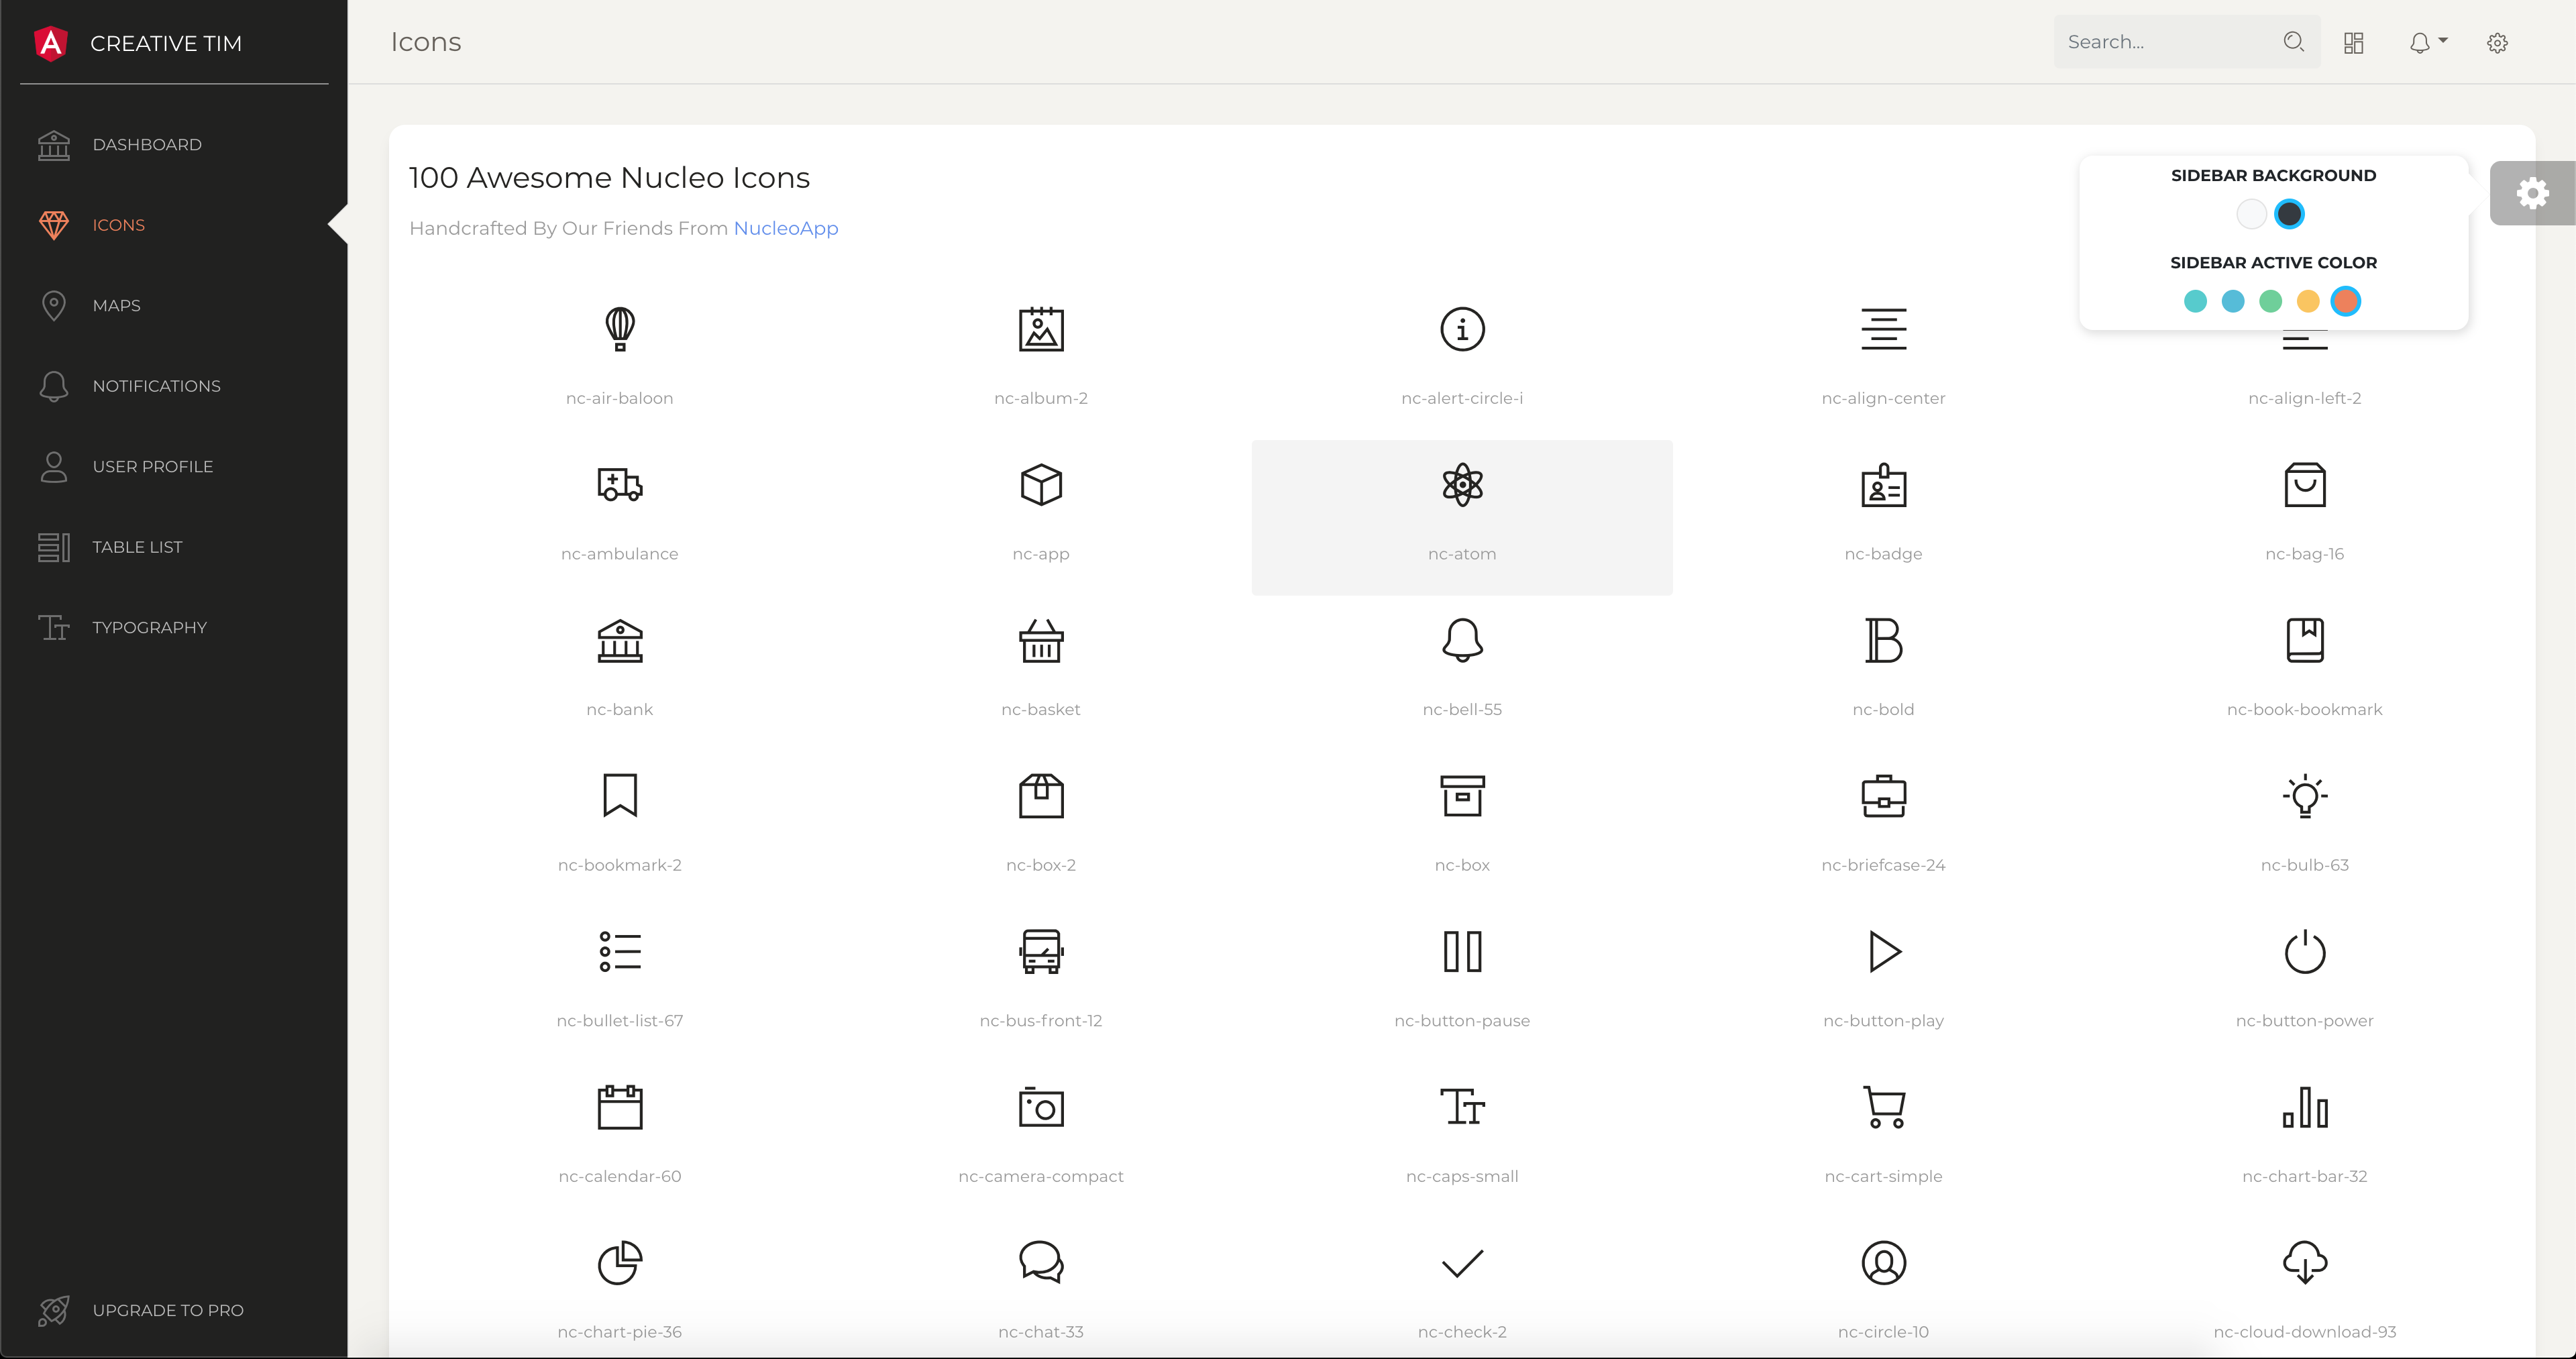 Icons Page